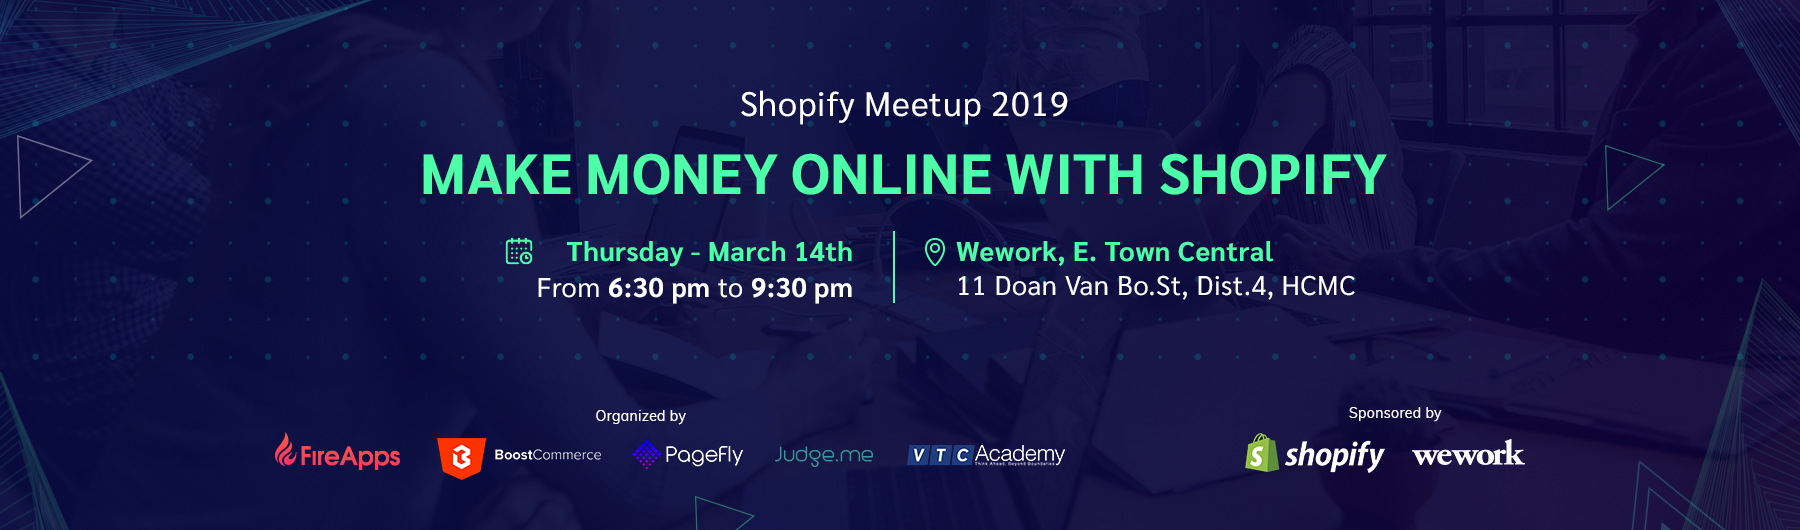 First Official Shopify Meetup in Vietnam (HCMC): Make Money Online with Dropshipping